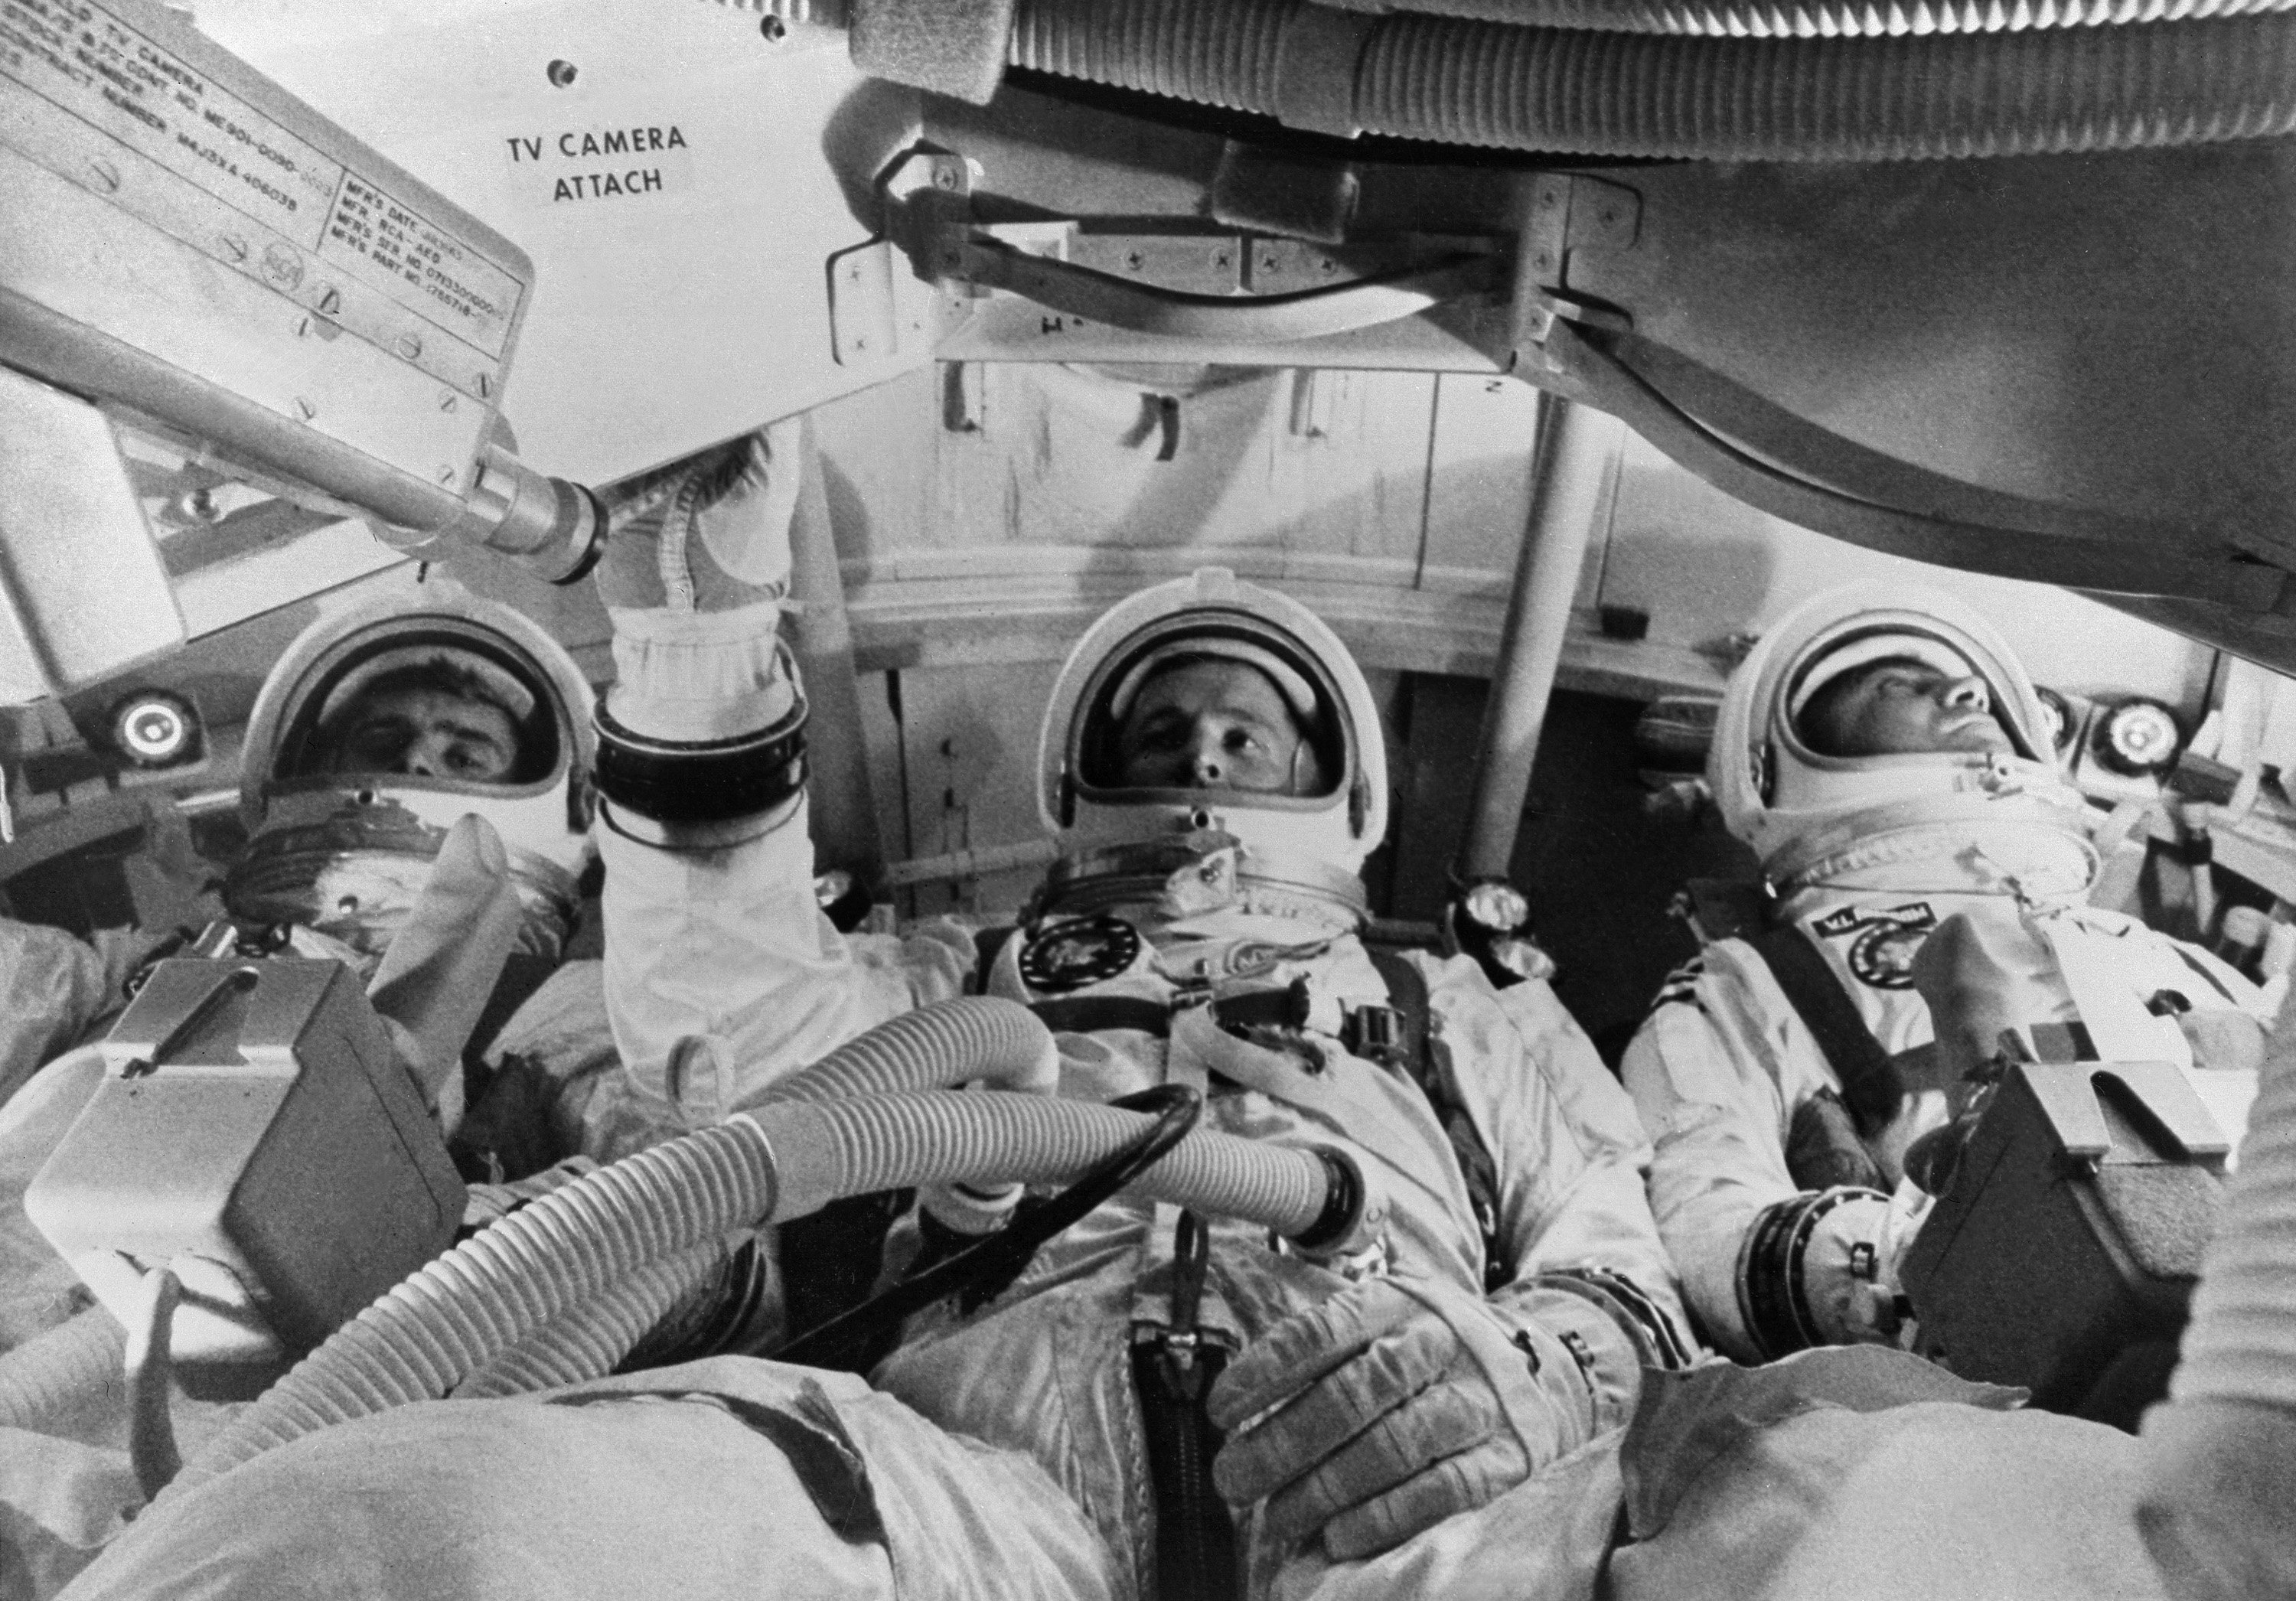 astronauts killed in space program - photo #21